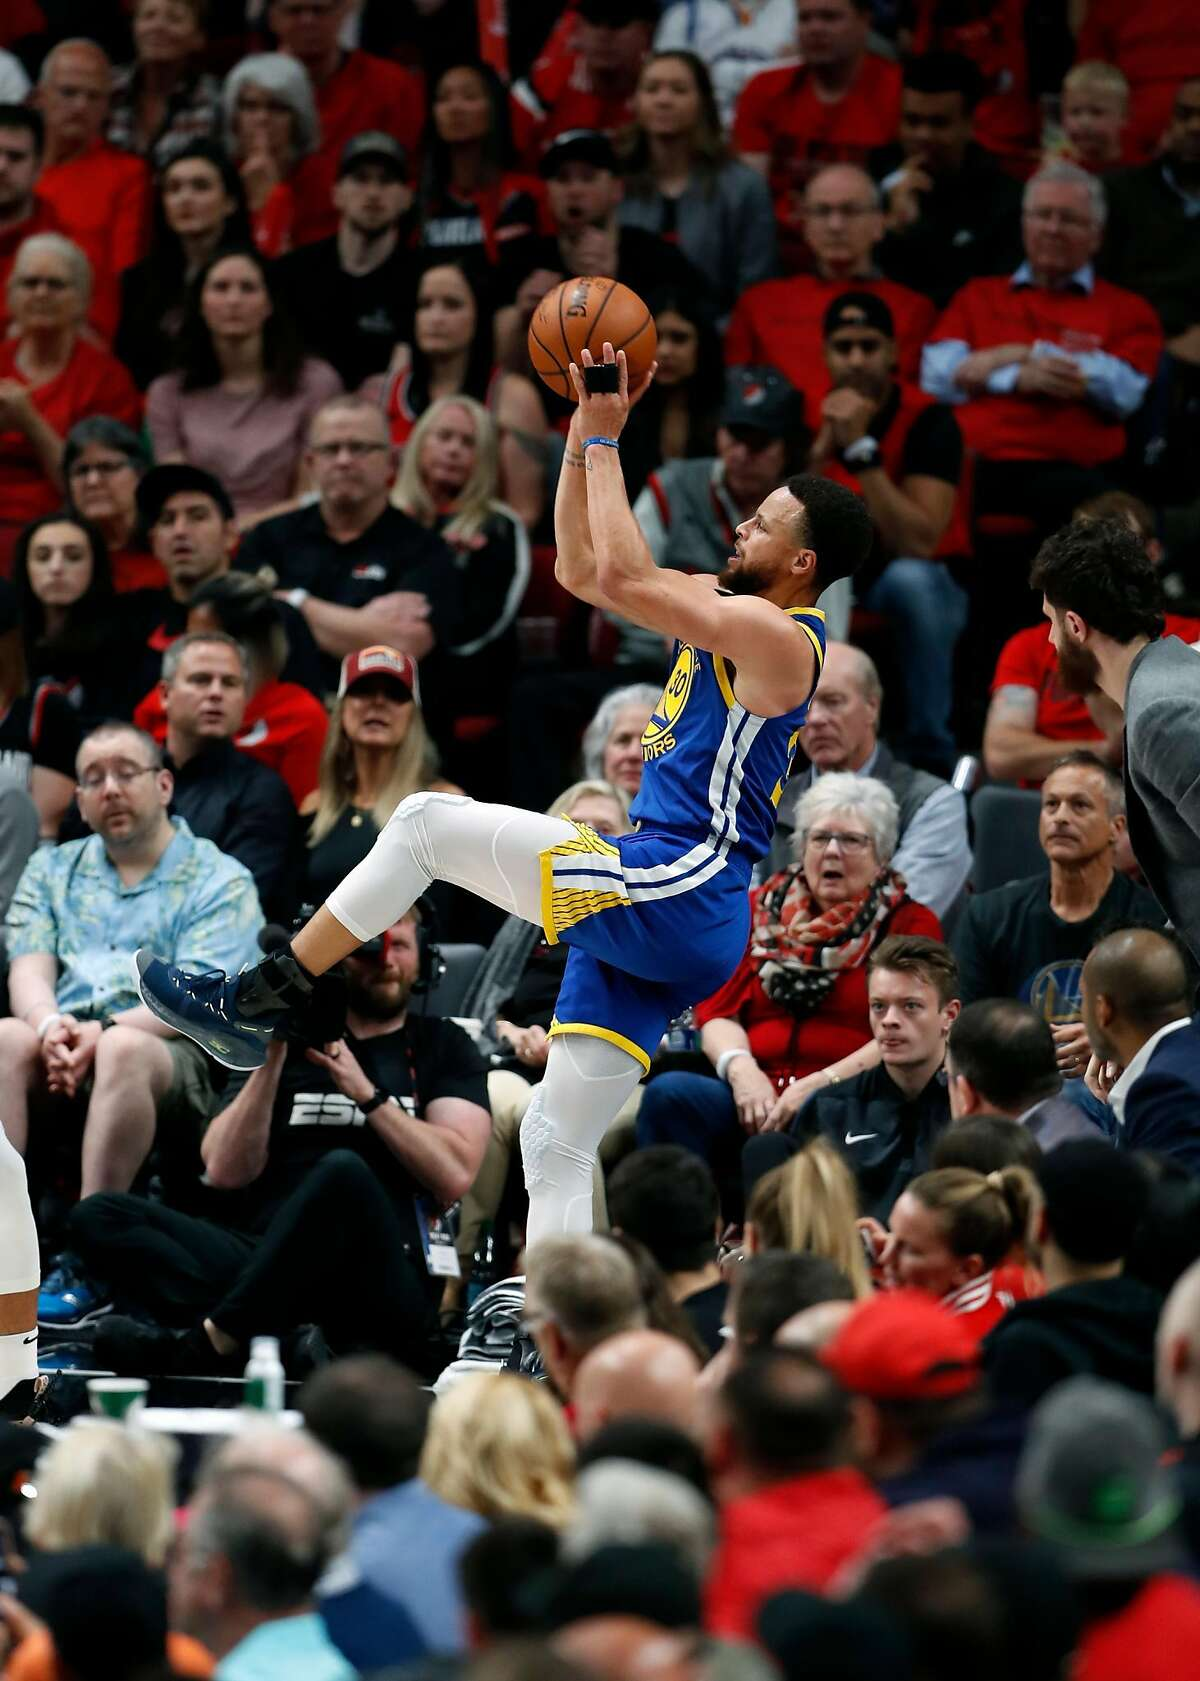 Golden State Warriors' Stephen Curry shoots a 3-pointer in 4th quarter of Warriors' 119-117 overtime win over Portland Trail Blazers in NBA Western Conference Finals' Game 4 at Moda Center in Portland, Oregon on Monday, May 20, 2019.